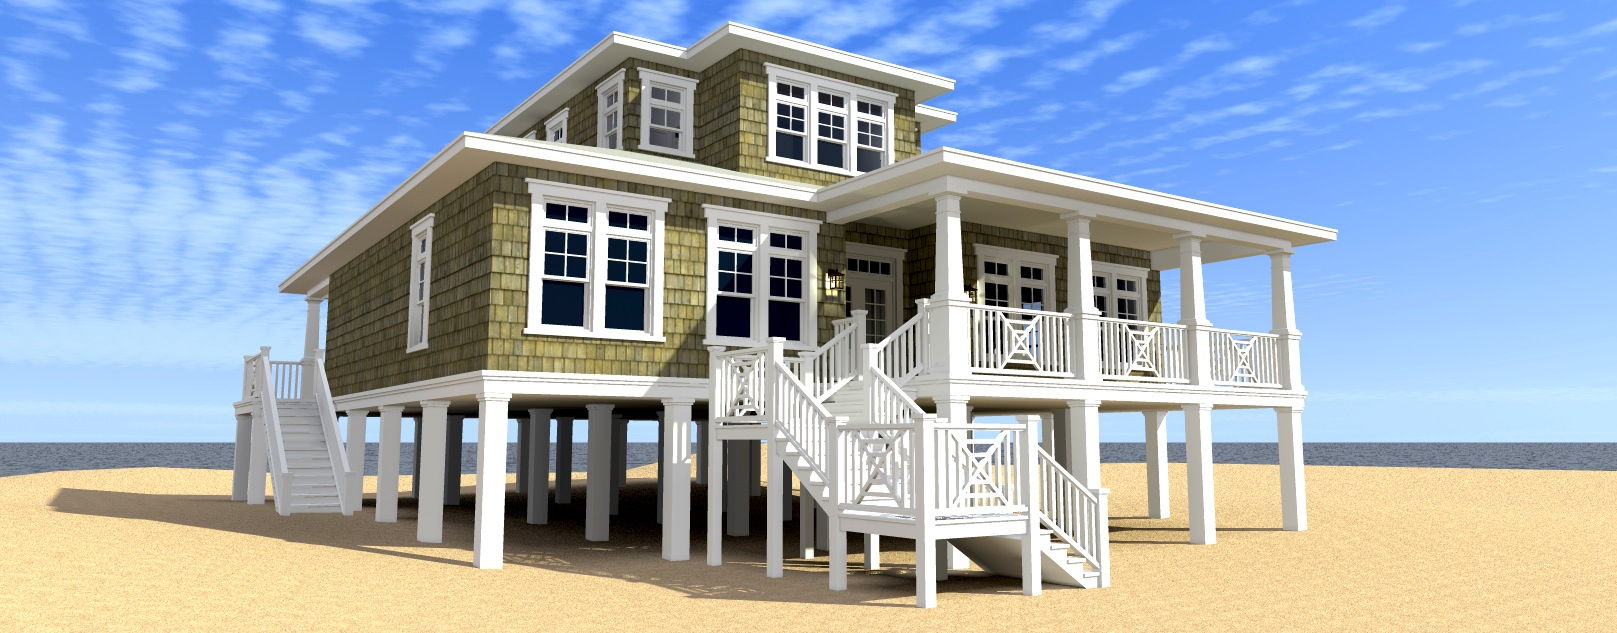 Scuppers house plan tyree house plans Beach house on stilts plans